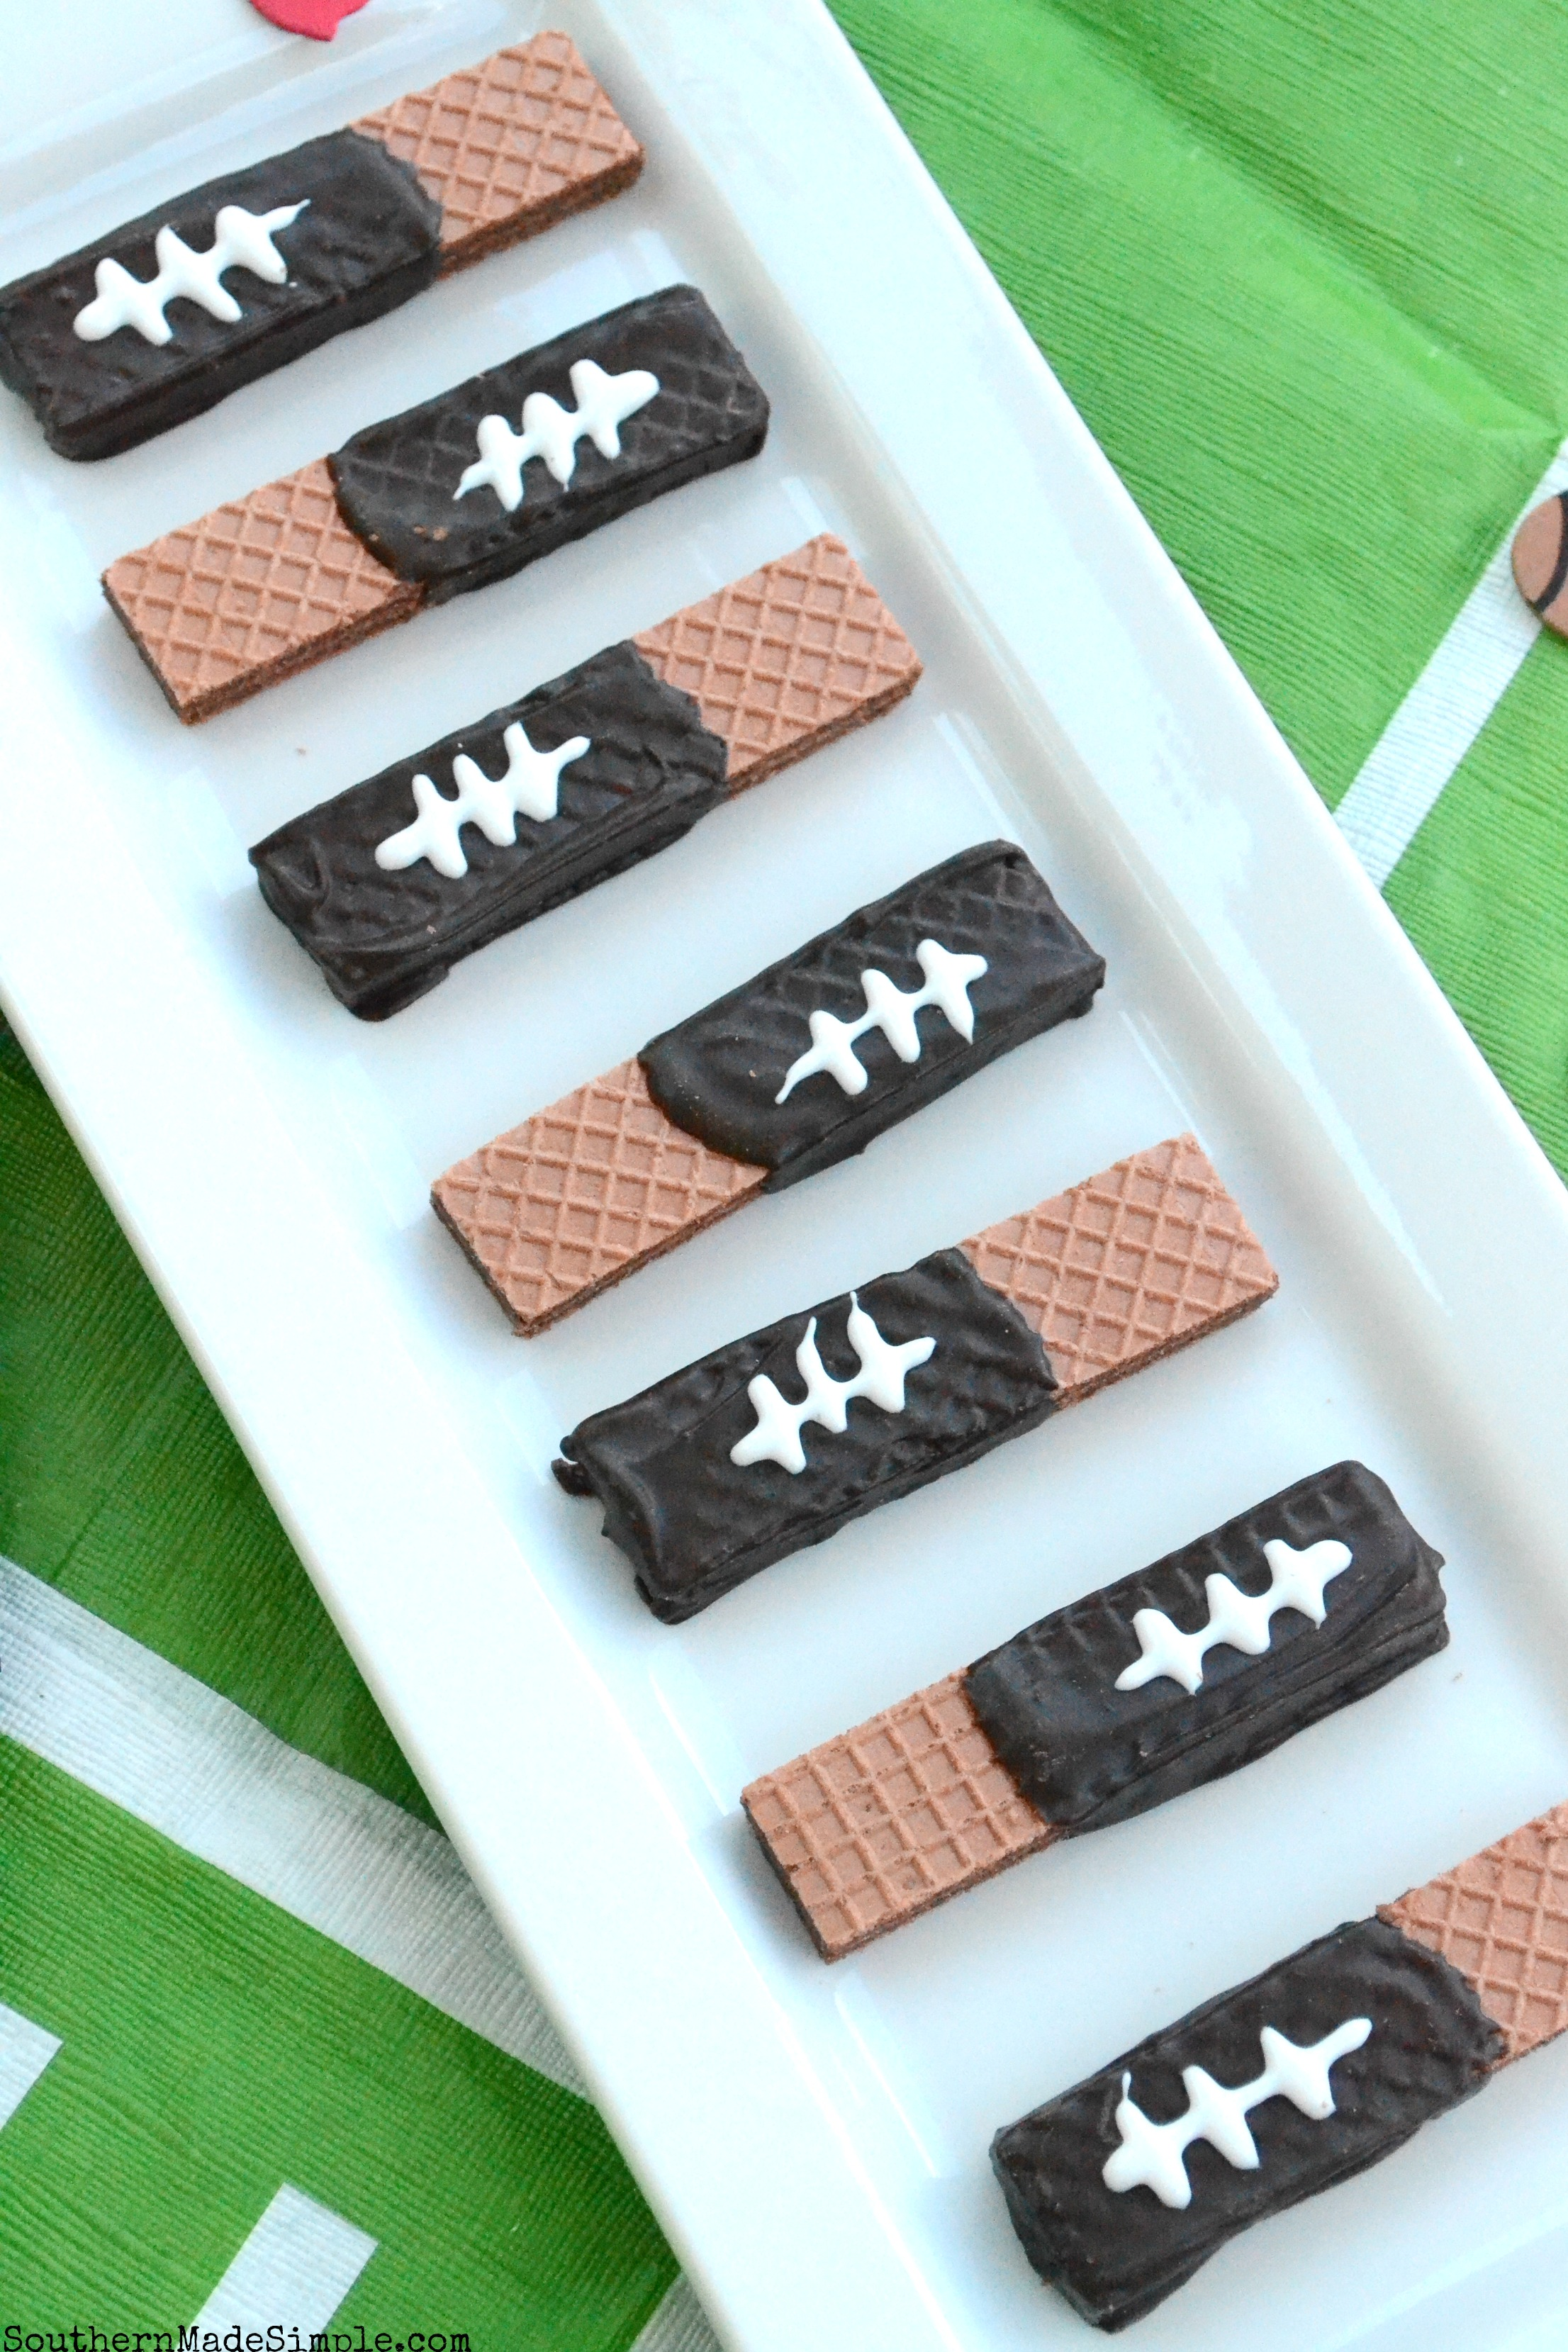 Football Sugar Wafers